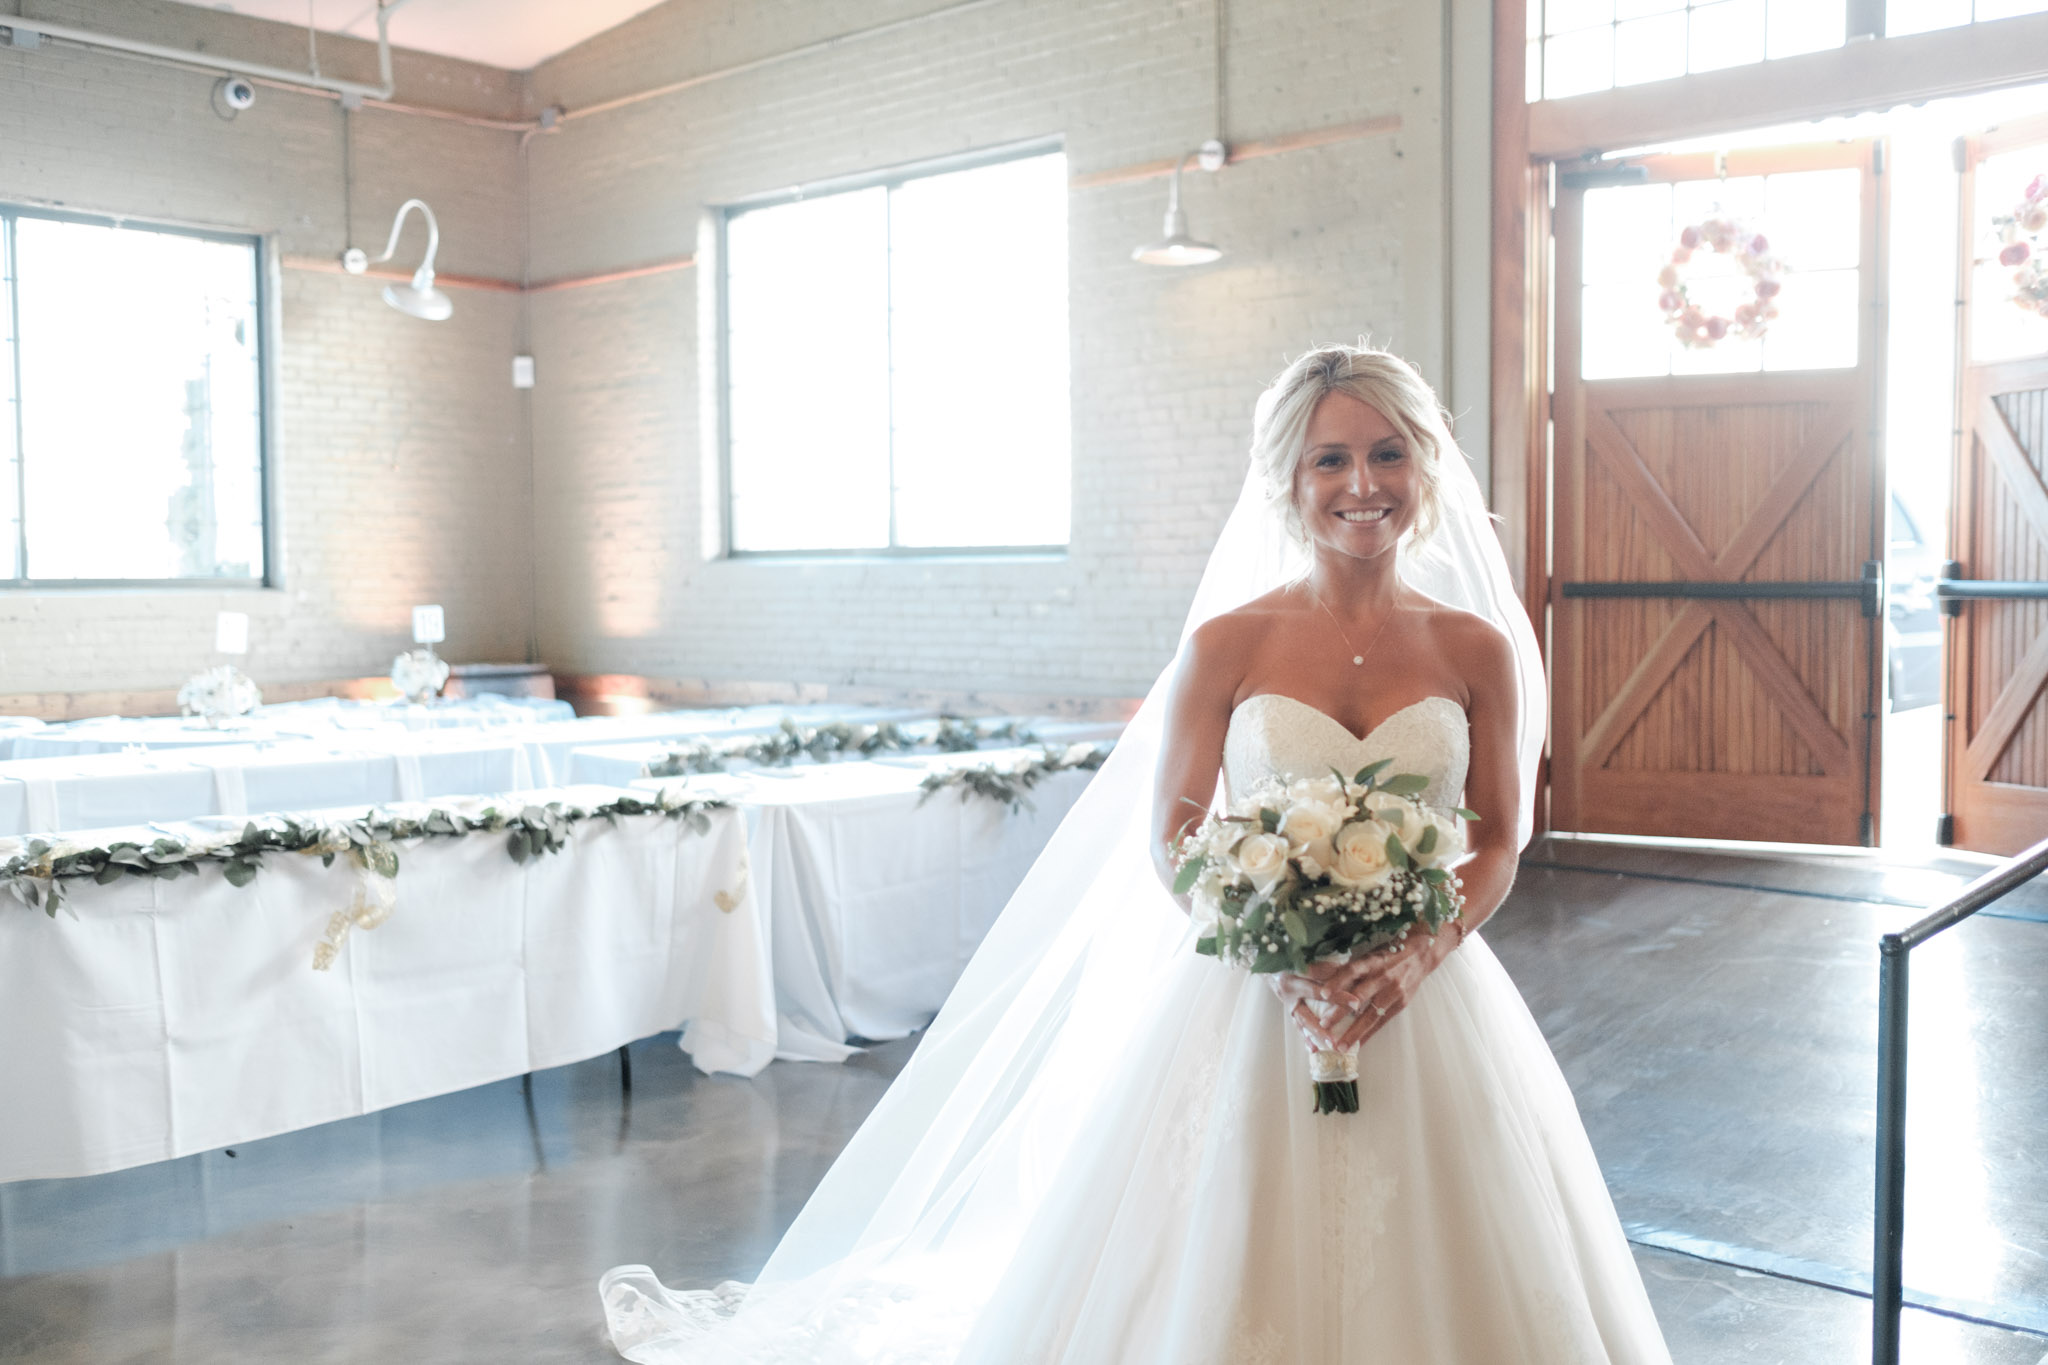 2018 BAP KatieGrant Prairie Street Brewhouse Rockford Wedding-43.jpg